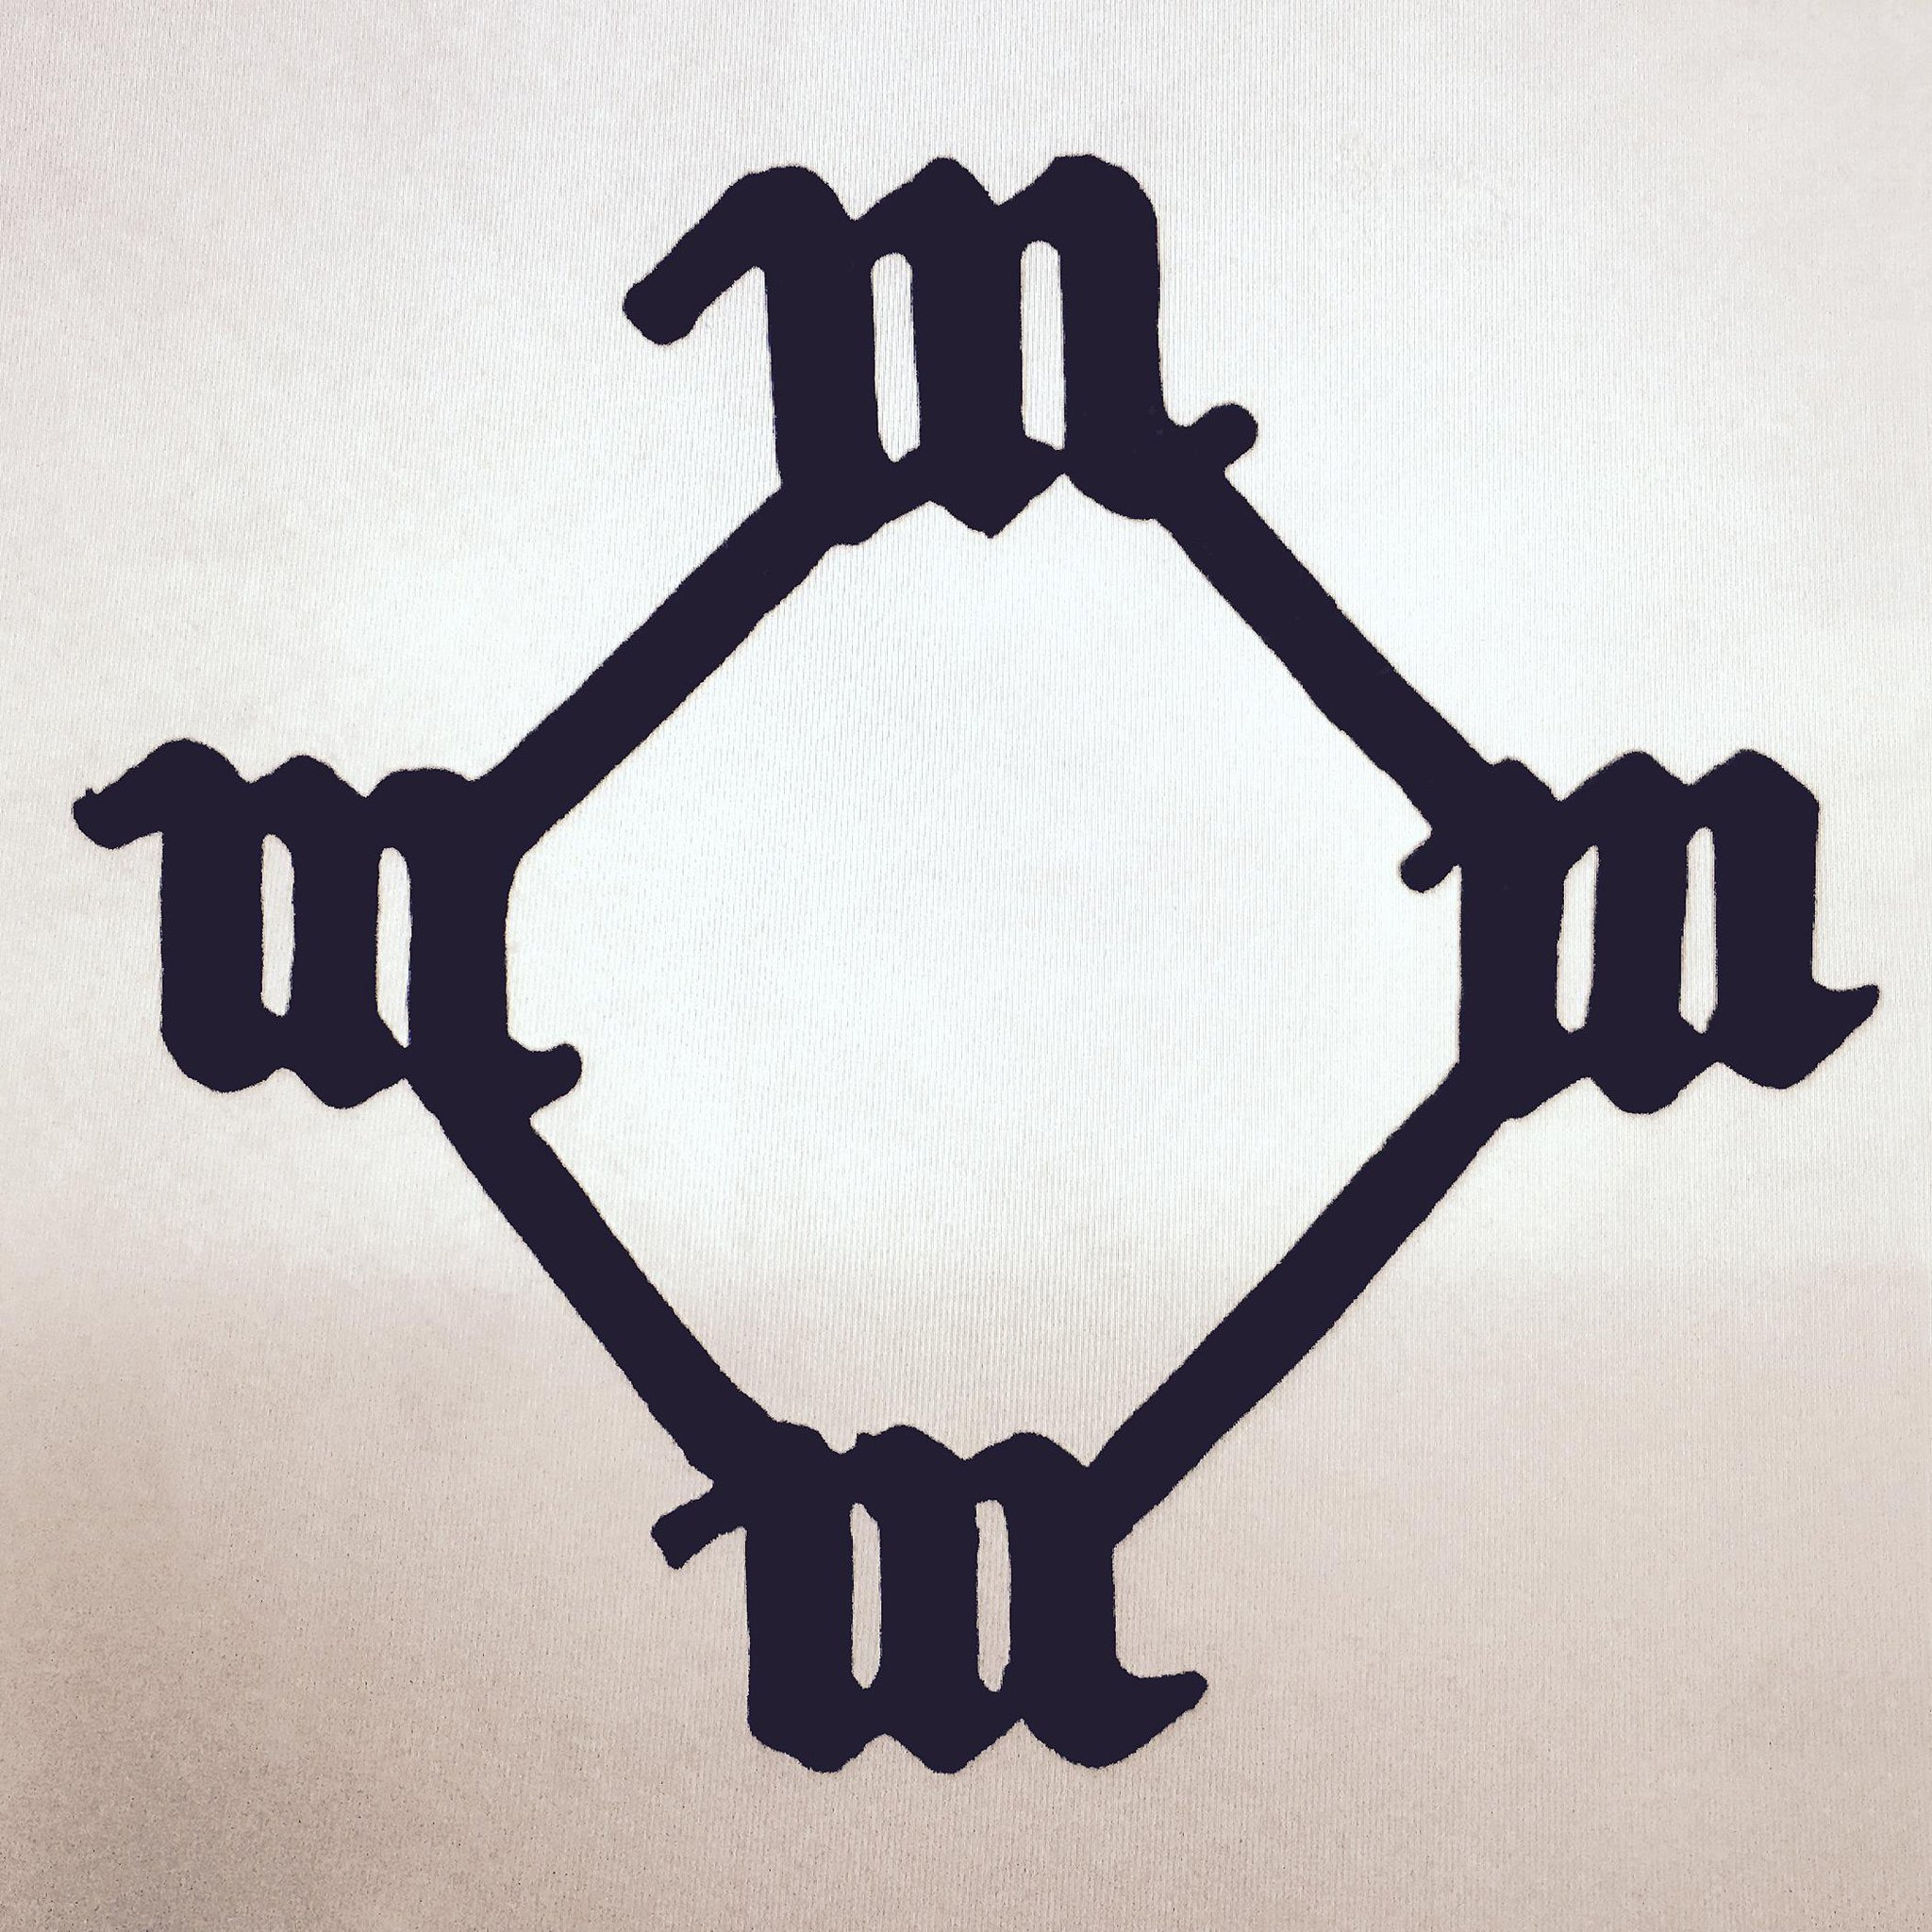 ALL DAY (feat. Theophilus London, Allan Kingdom & Paul McCartney) http://t.co/AOMo6EtEDT http://t.co/1xvft3175J http://t.co/LfasWNl679